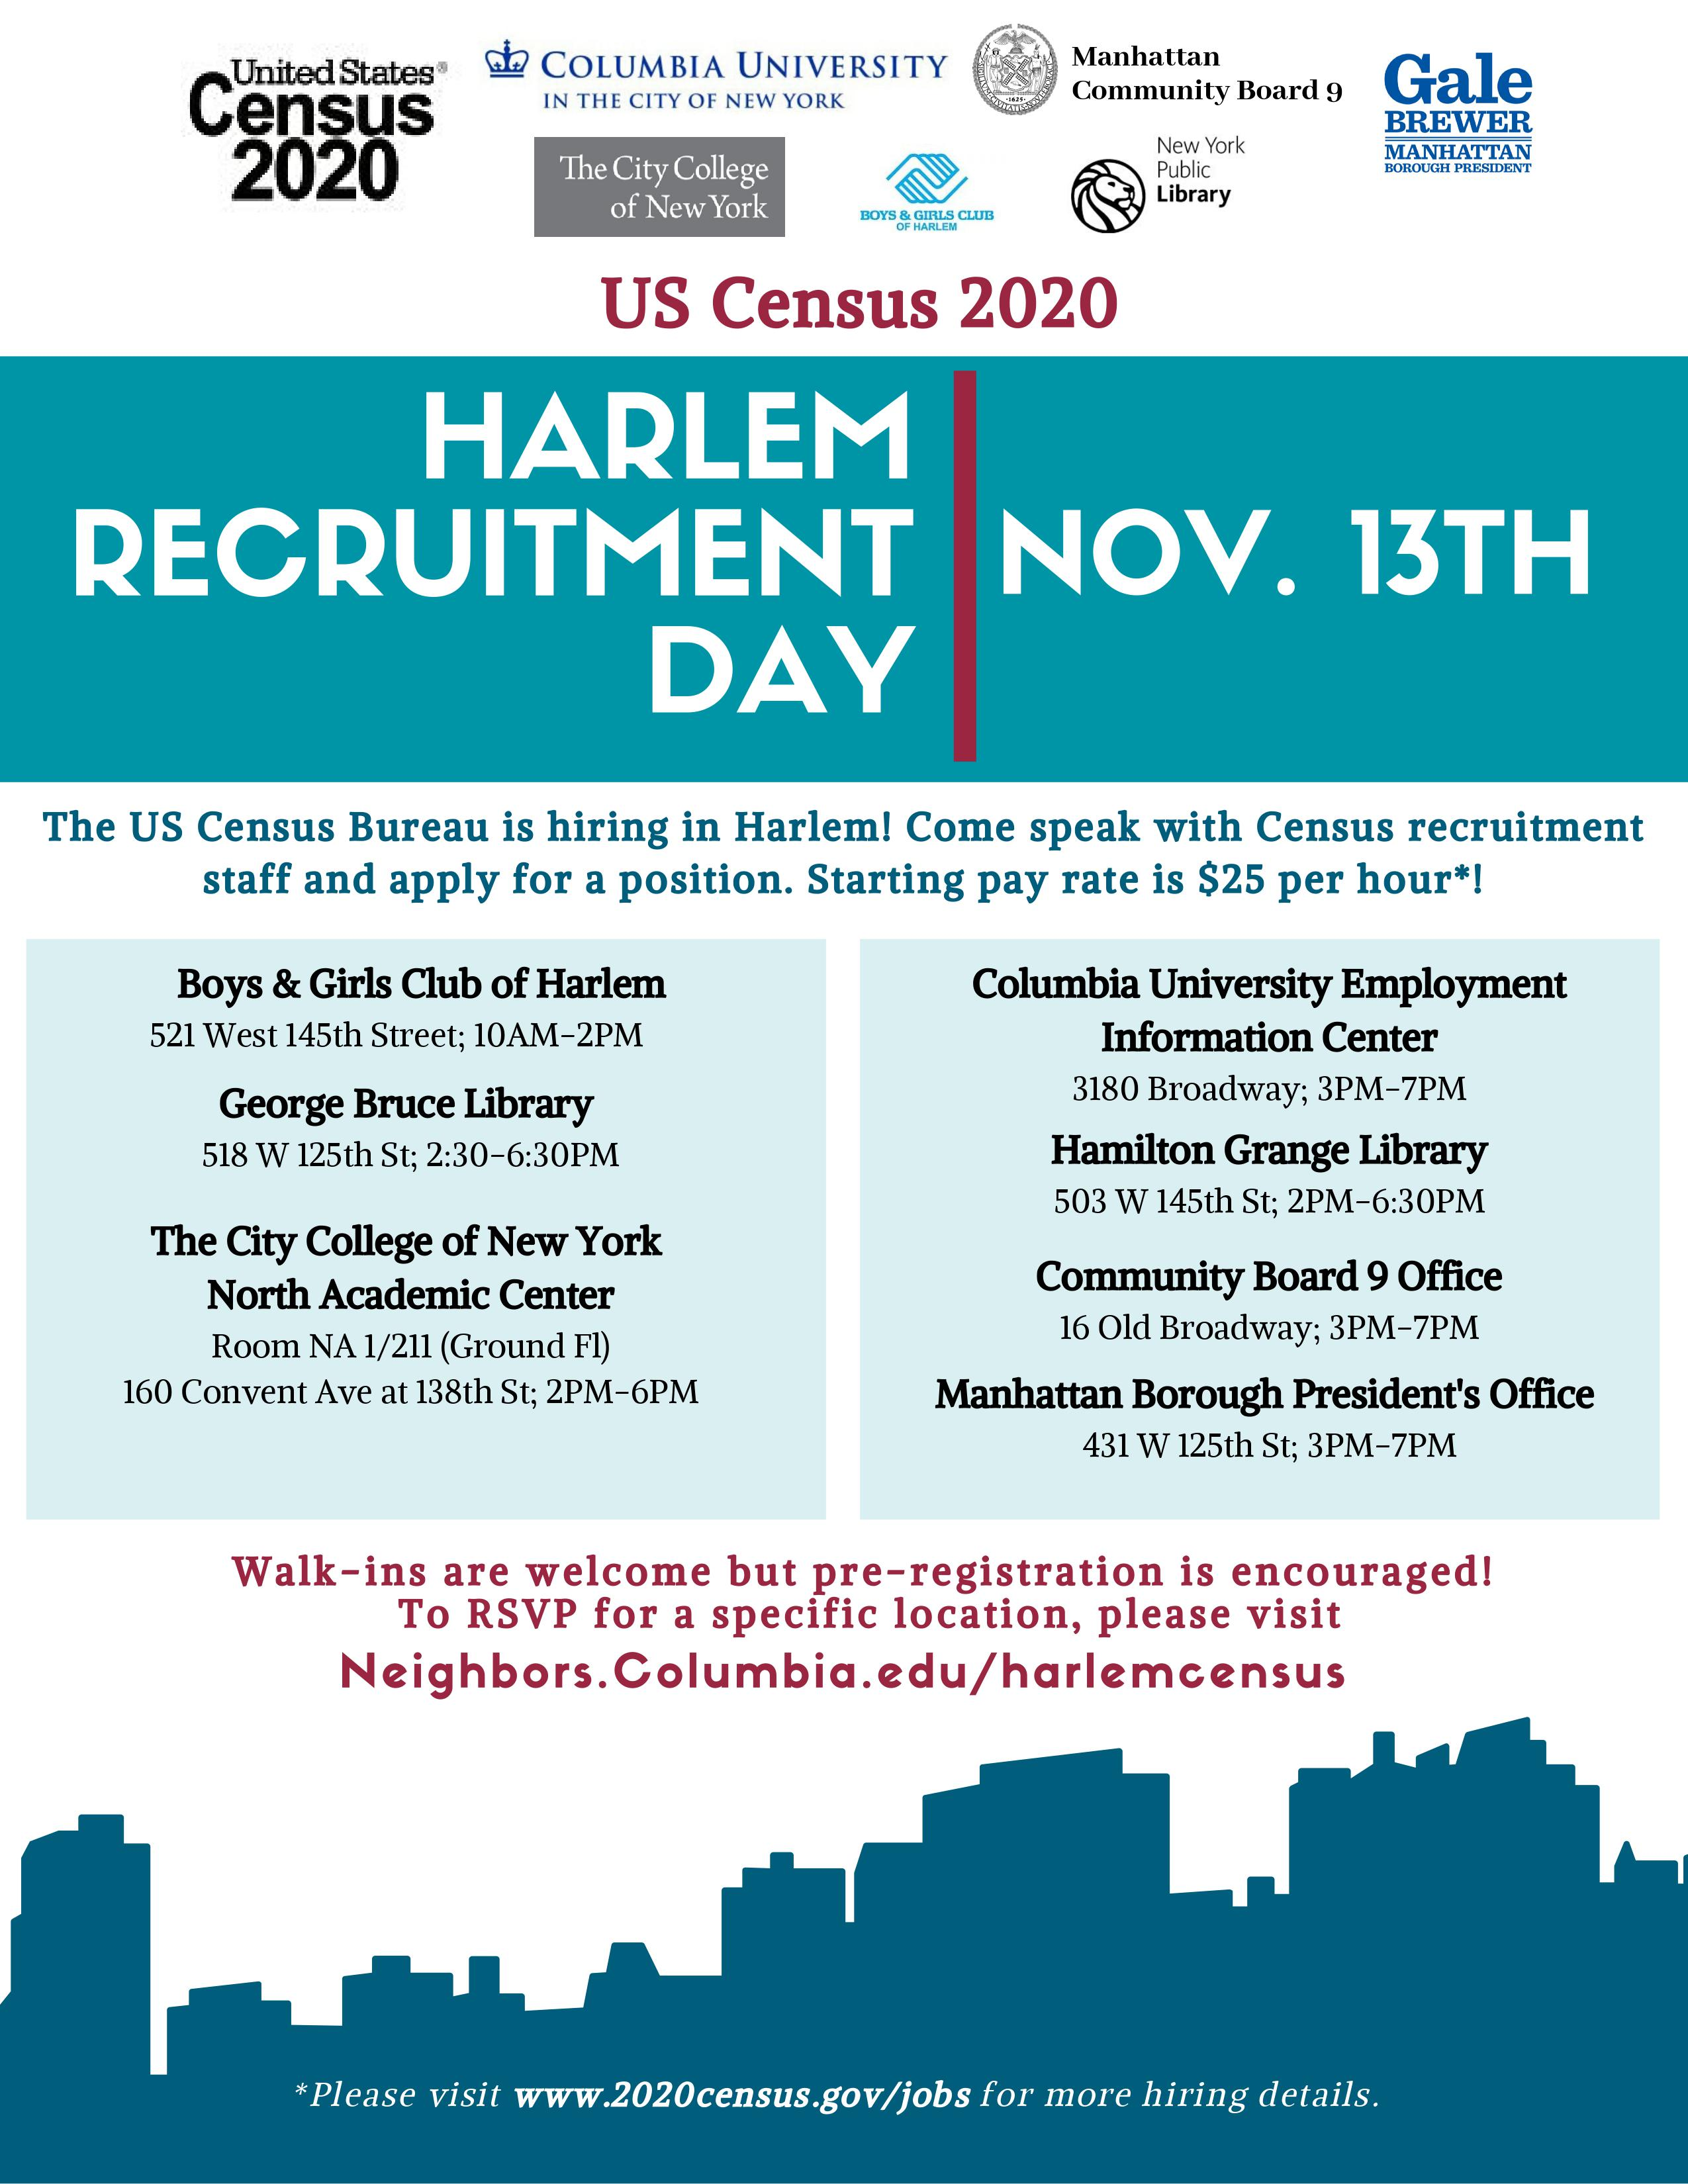 The US Census Bureau is hiring in Upper Manhattan! Come speak with Census recruitment officers and apply for Census taker and administrative positions. Starting pay rate is $25 per hour! RSVP https://neighbors.columbia.edu/events/census-2020-harlem-recruitment-day